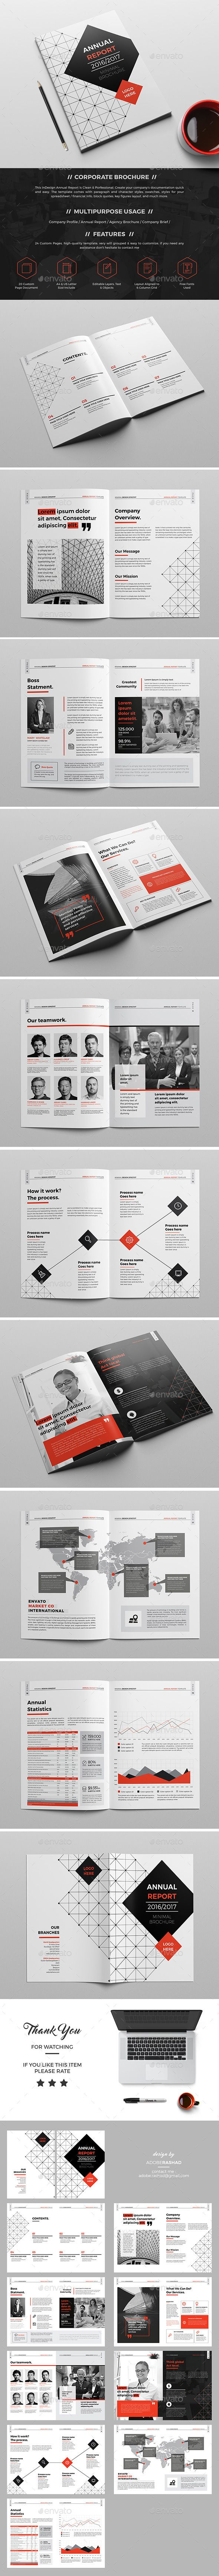 Company Brochure/Report 20 Page  #adoberashad #annual report #brand • Available here → http://graphicriver.net/item/company-brochurereport-20-page/15822328?ref=pxcr